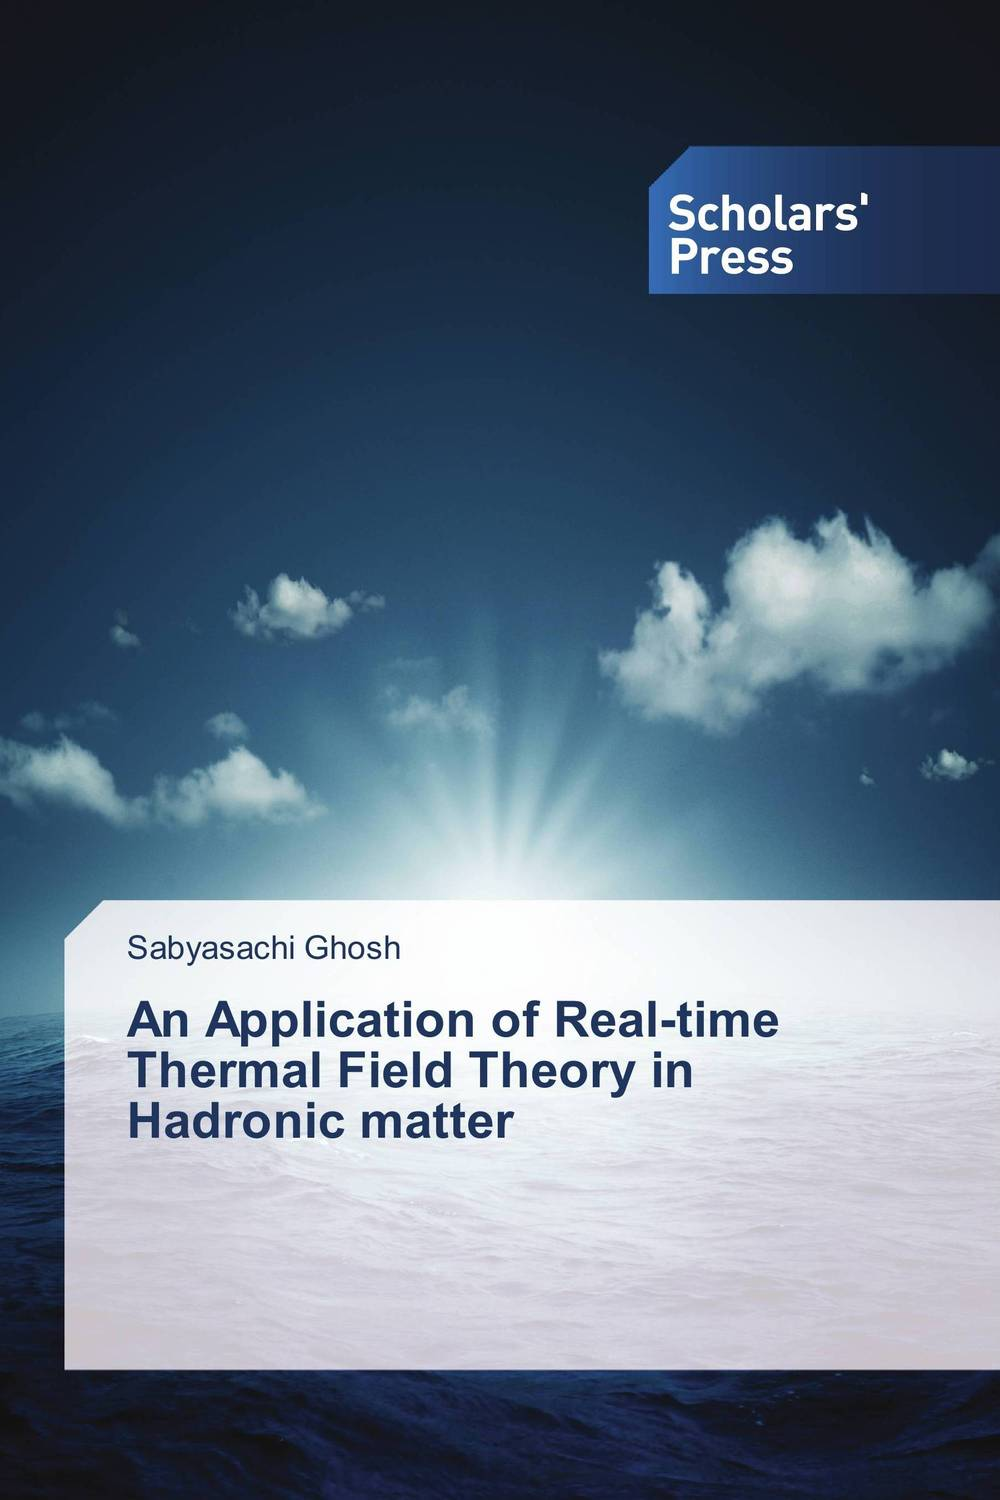 An Application of Real-time Thermal Field Theory in Hadronic matter kenneth rosen d investing in income properties the big six formula for achieving wealth in real estate